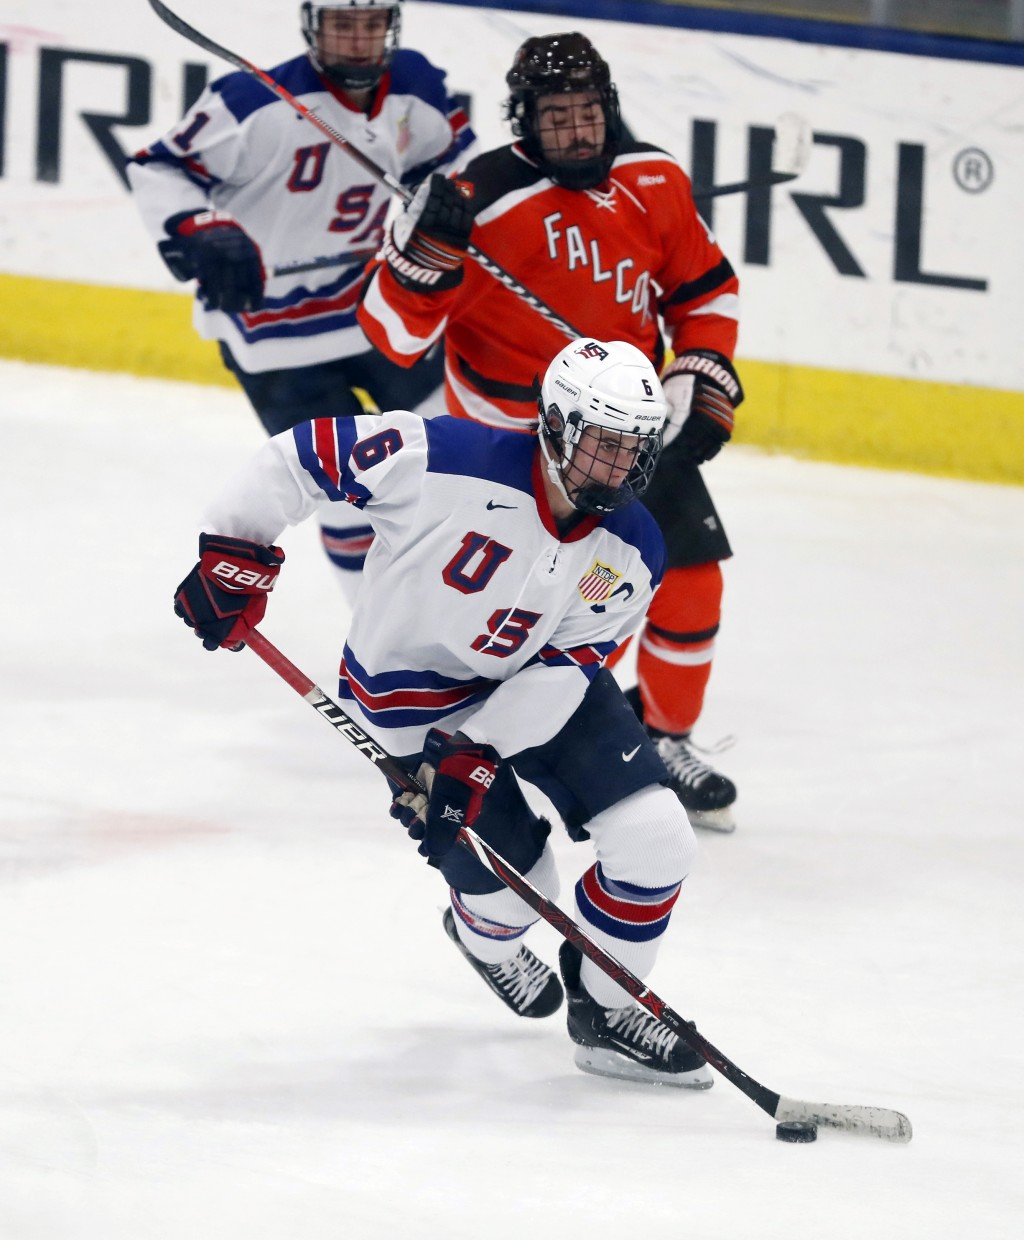 In this Wednesday, Nov. 21, 2018, photo, Jack Hughes, foreground, expected to be a top pick in the next NHL hockey draft, plays against Bowling Green ...